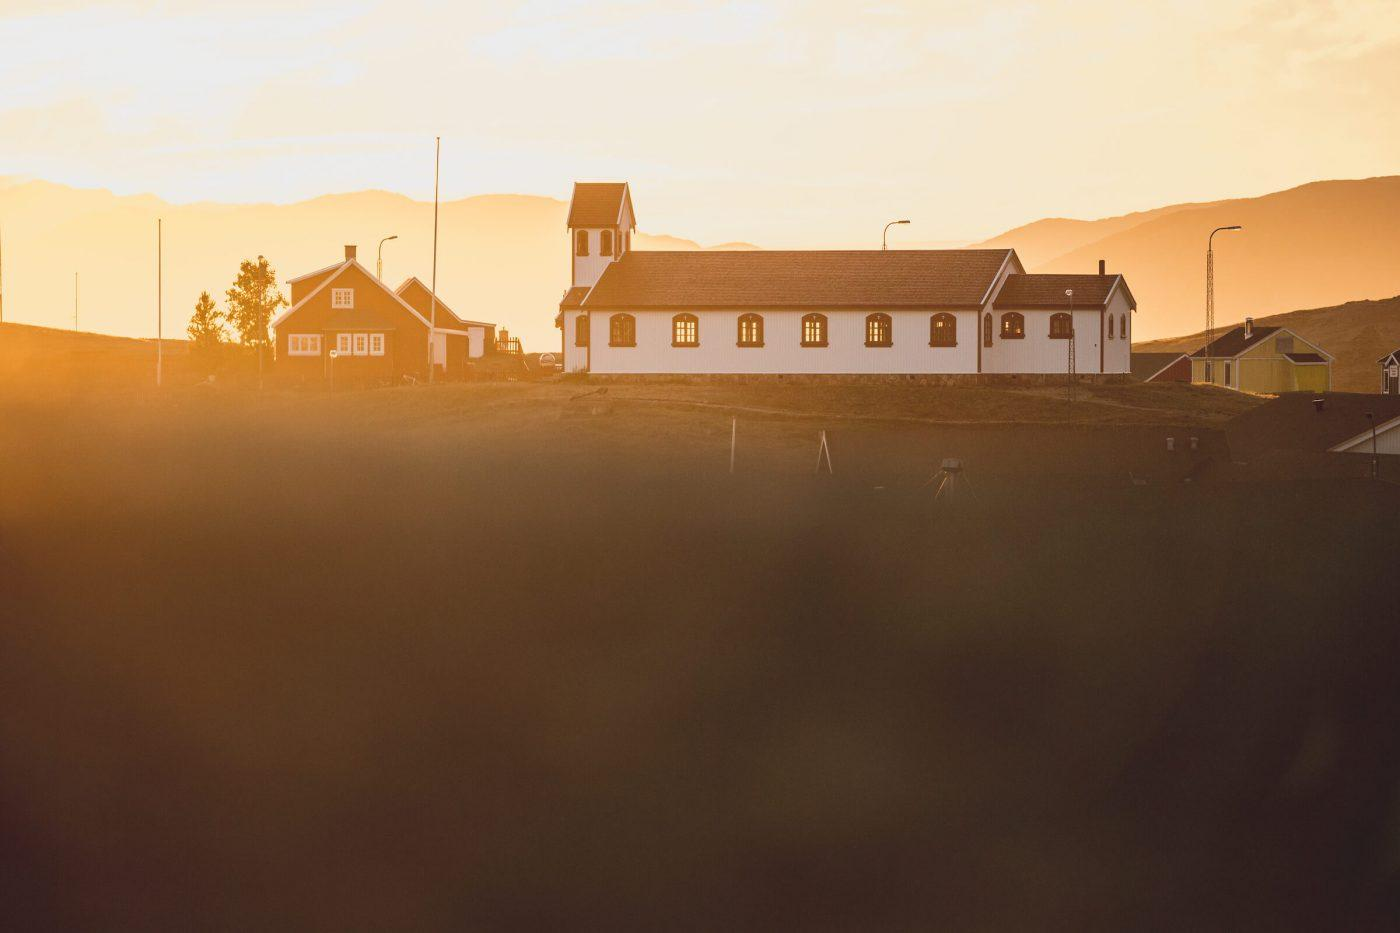 Sunset over the Narsaq church in South Greenland. Photo by Mads Pihl.